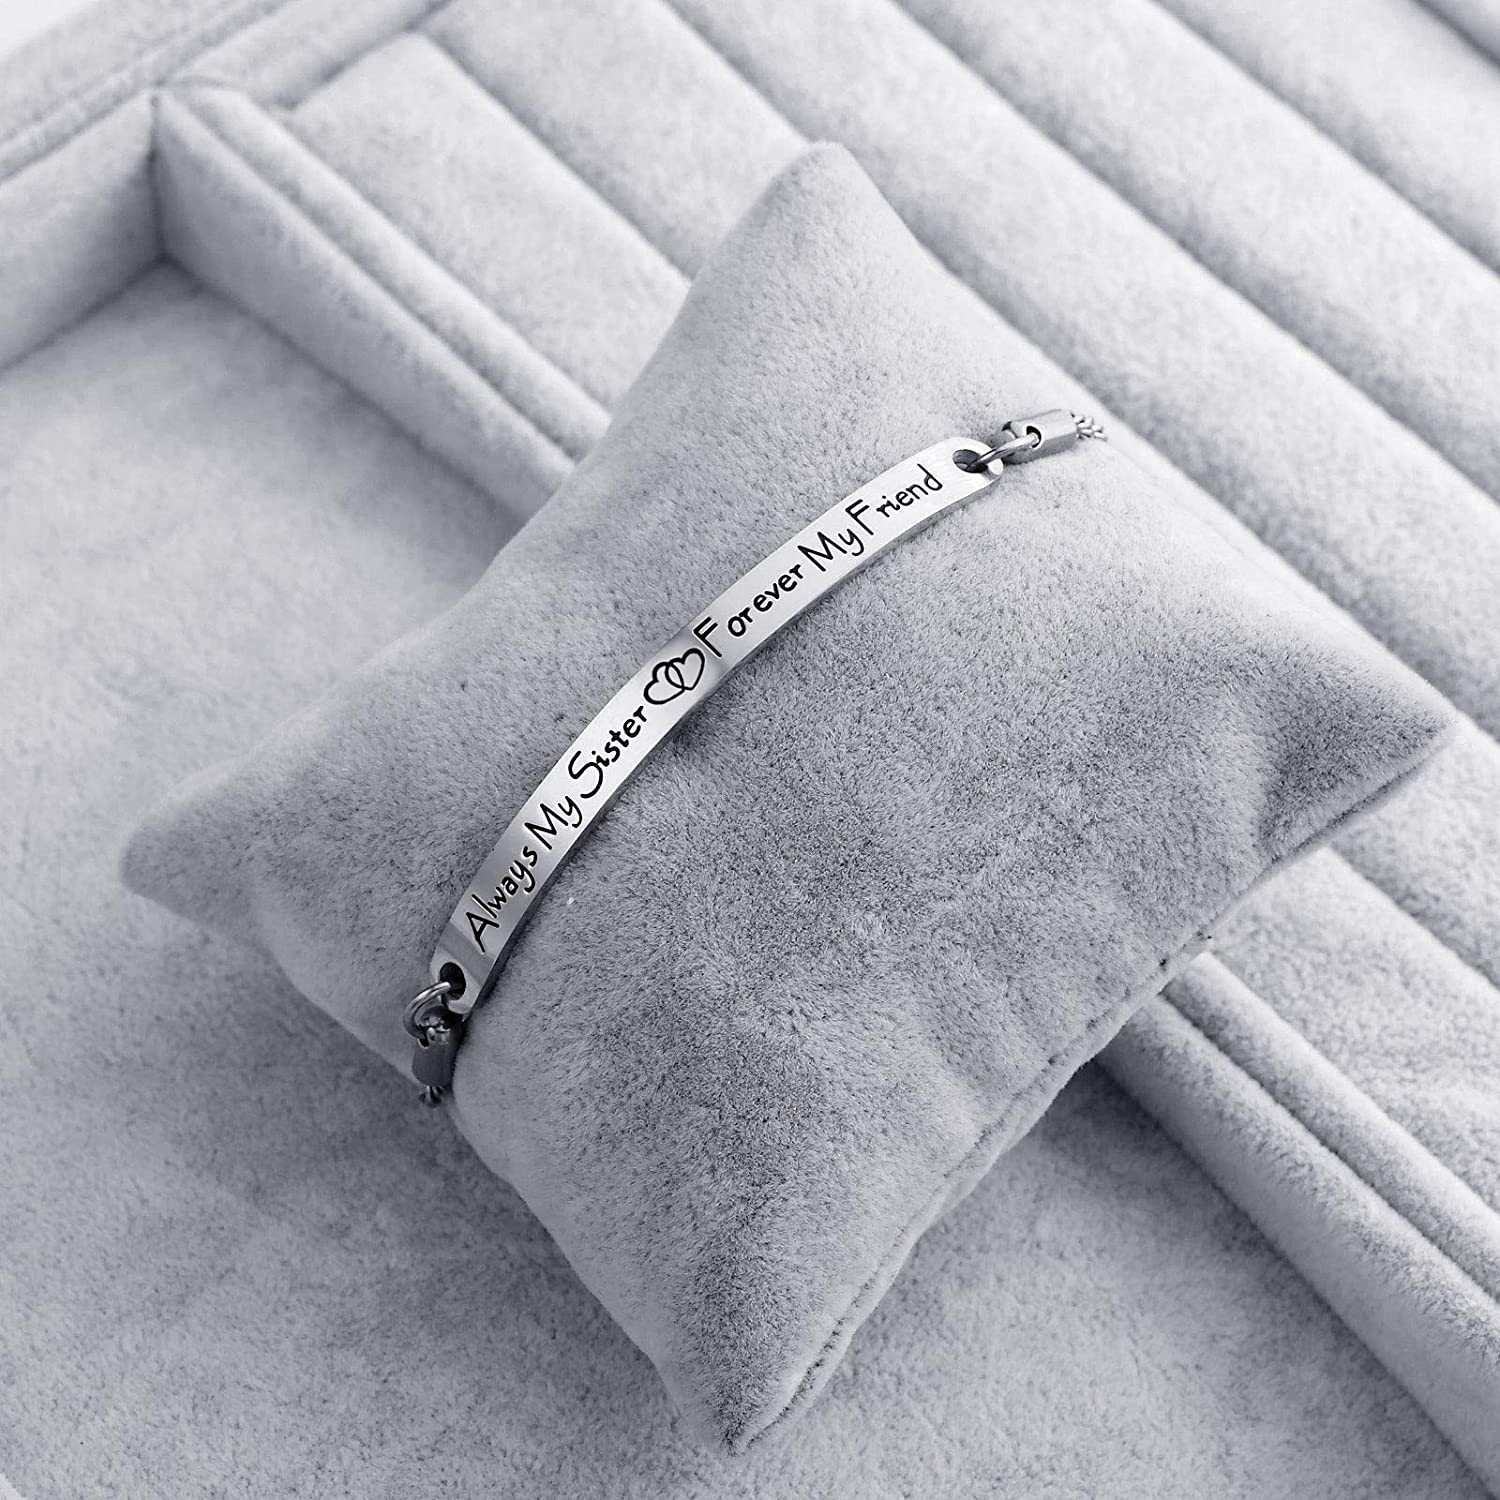 Inspirational Bracelets Gifts Engraved Personalized Fashion Bangles for Women Girl Sister Mother Friends